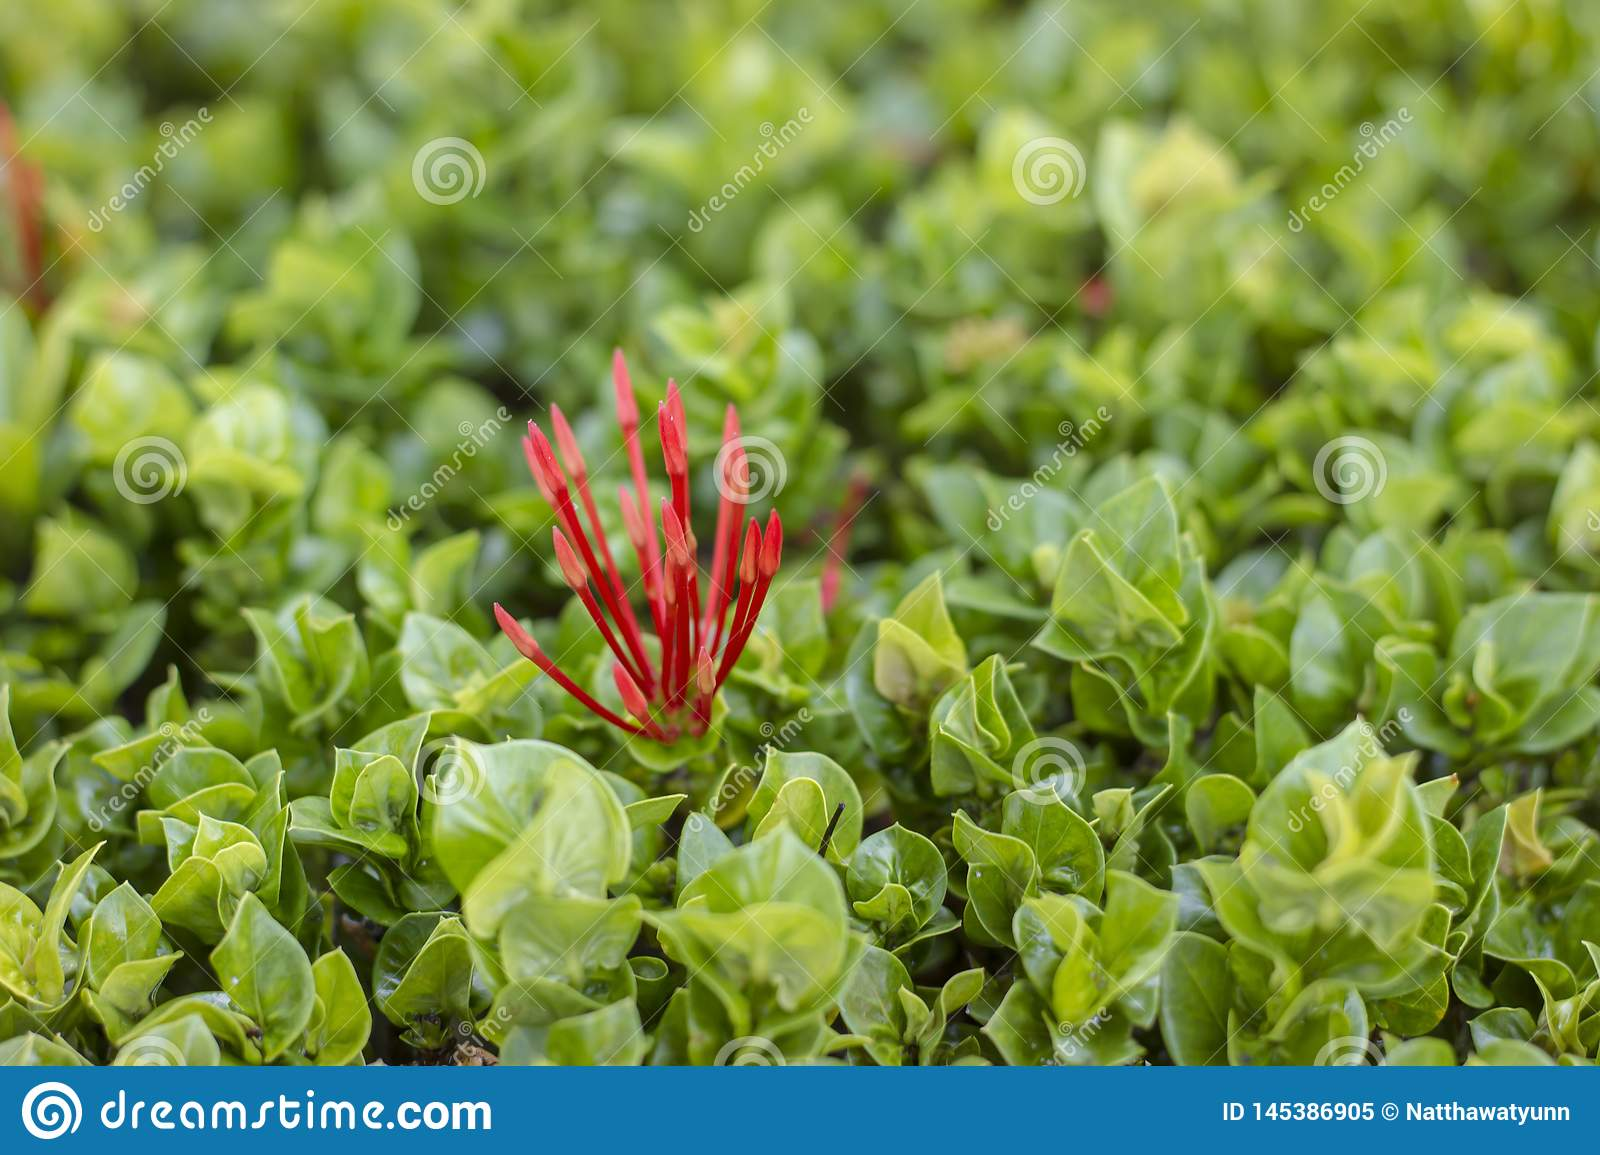 Spike flower petals are a bunch of red and green leaves decorated with houses and gardens in Thailand